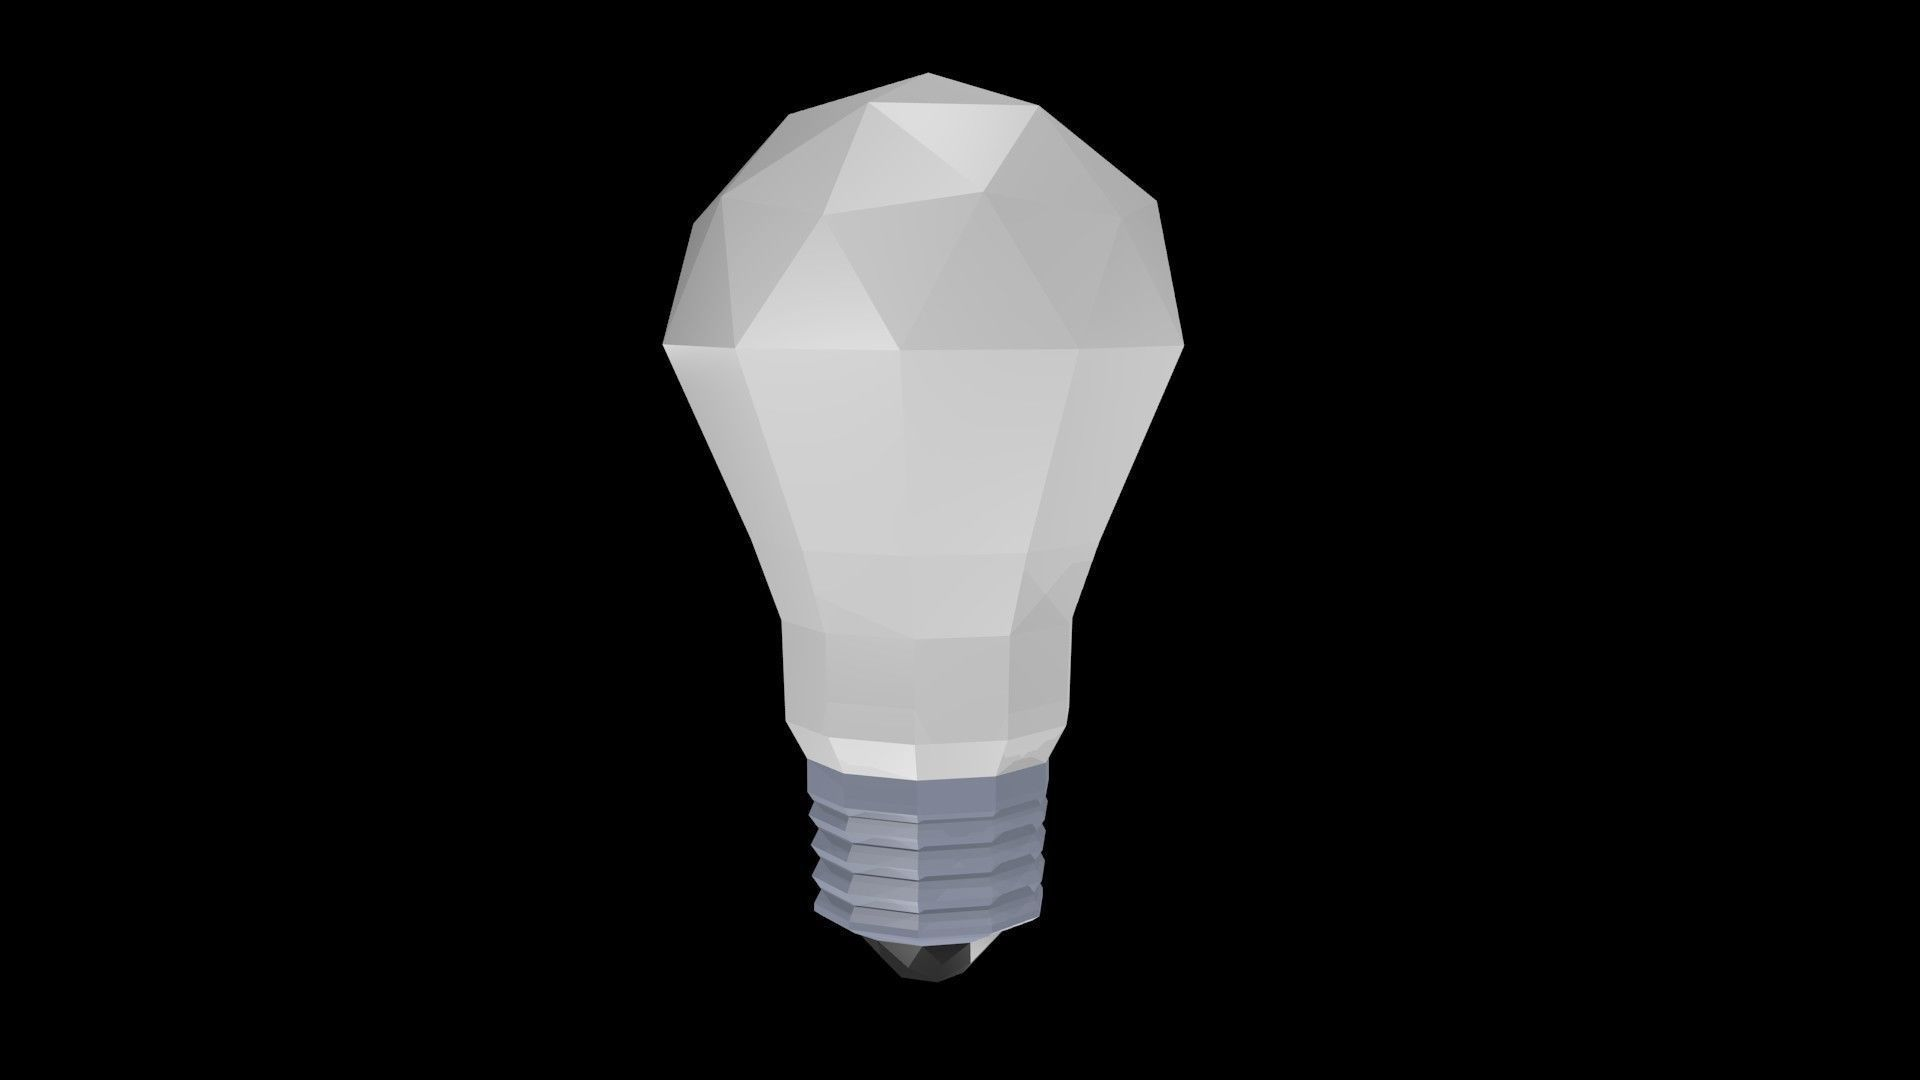 Low poly bulb